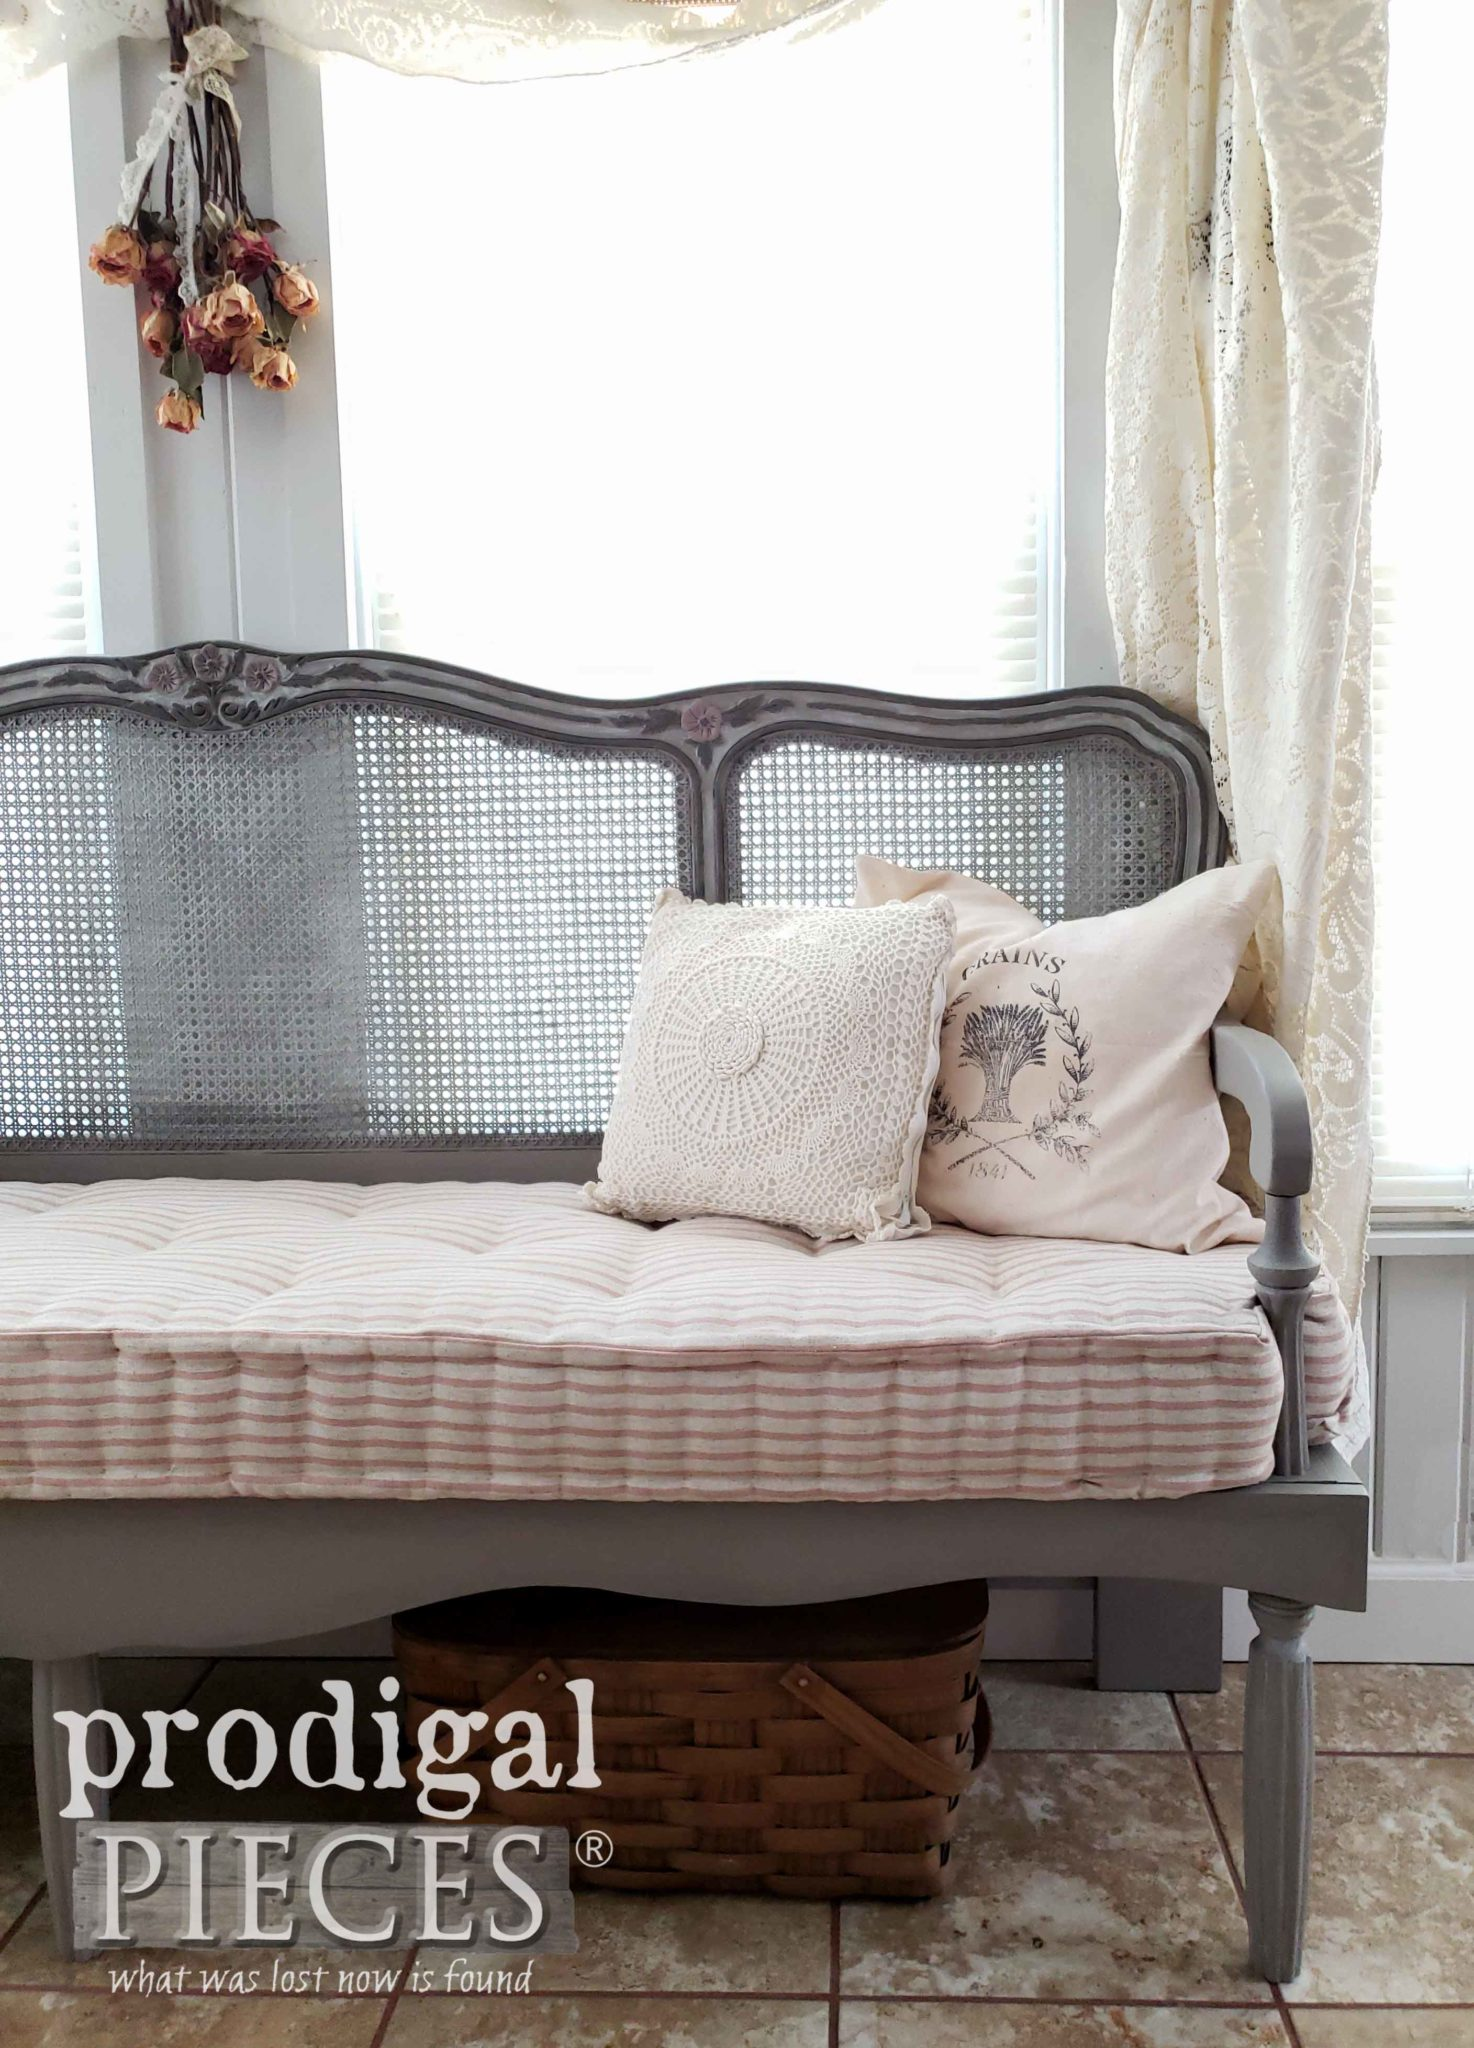 Handmade French Provincial Headboard Bench with Tufted French Mattress by Larissa of Prodigal Pieces | prodigalpieces.com